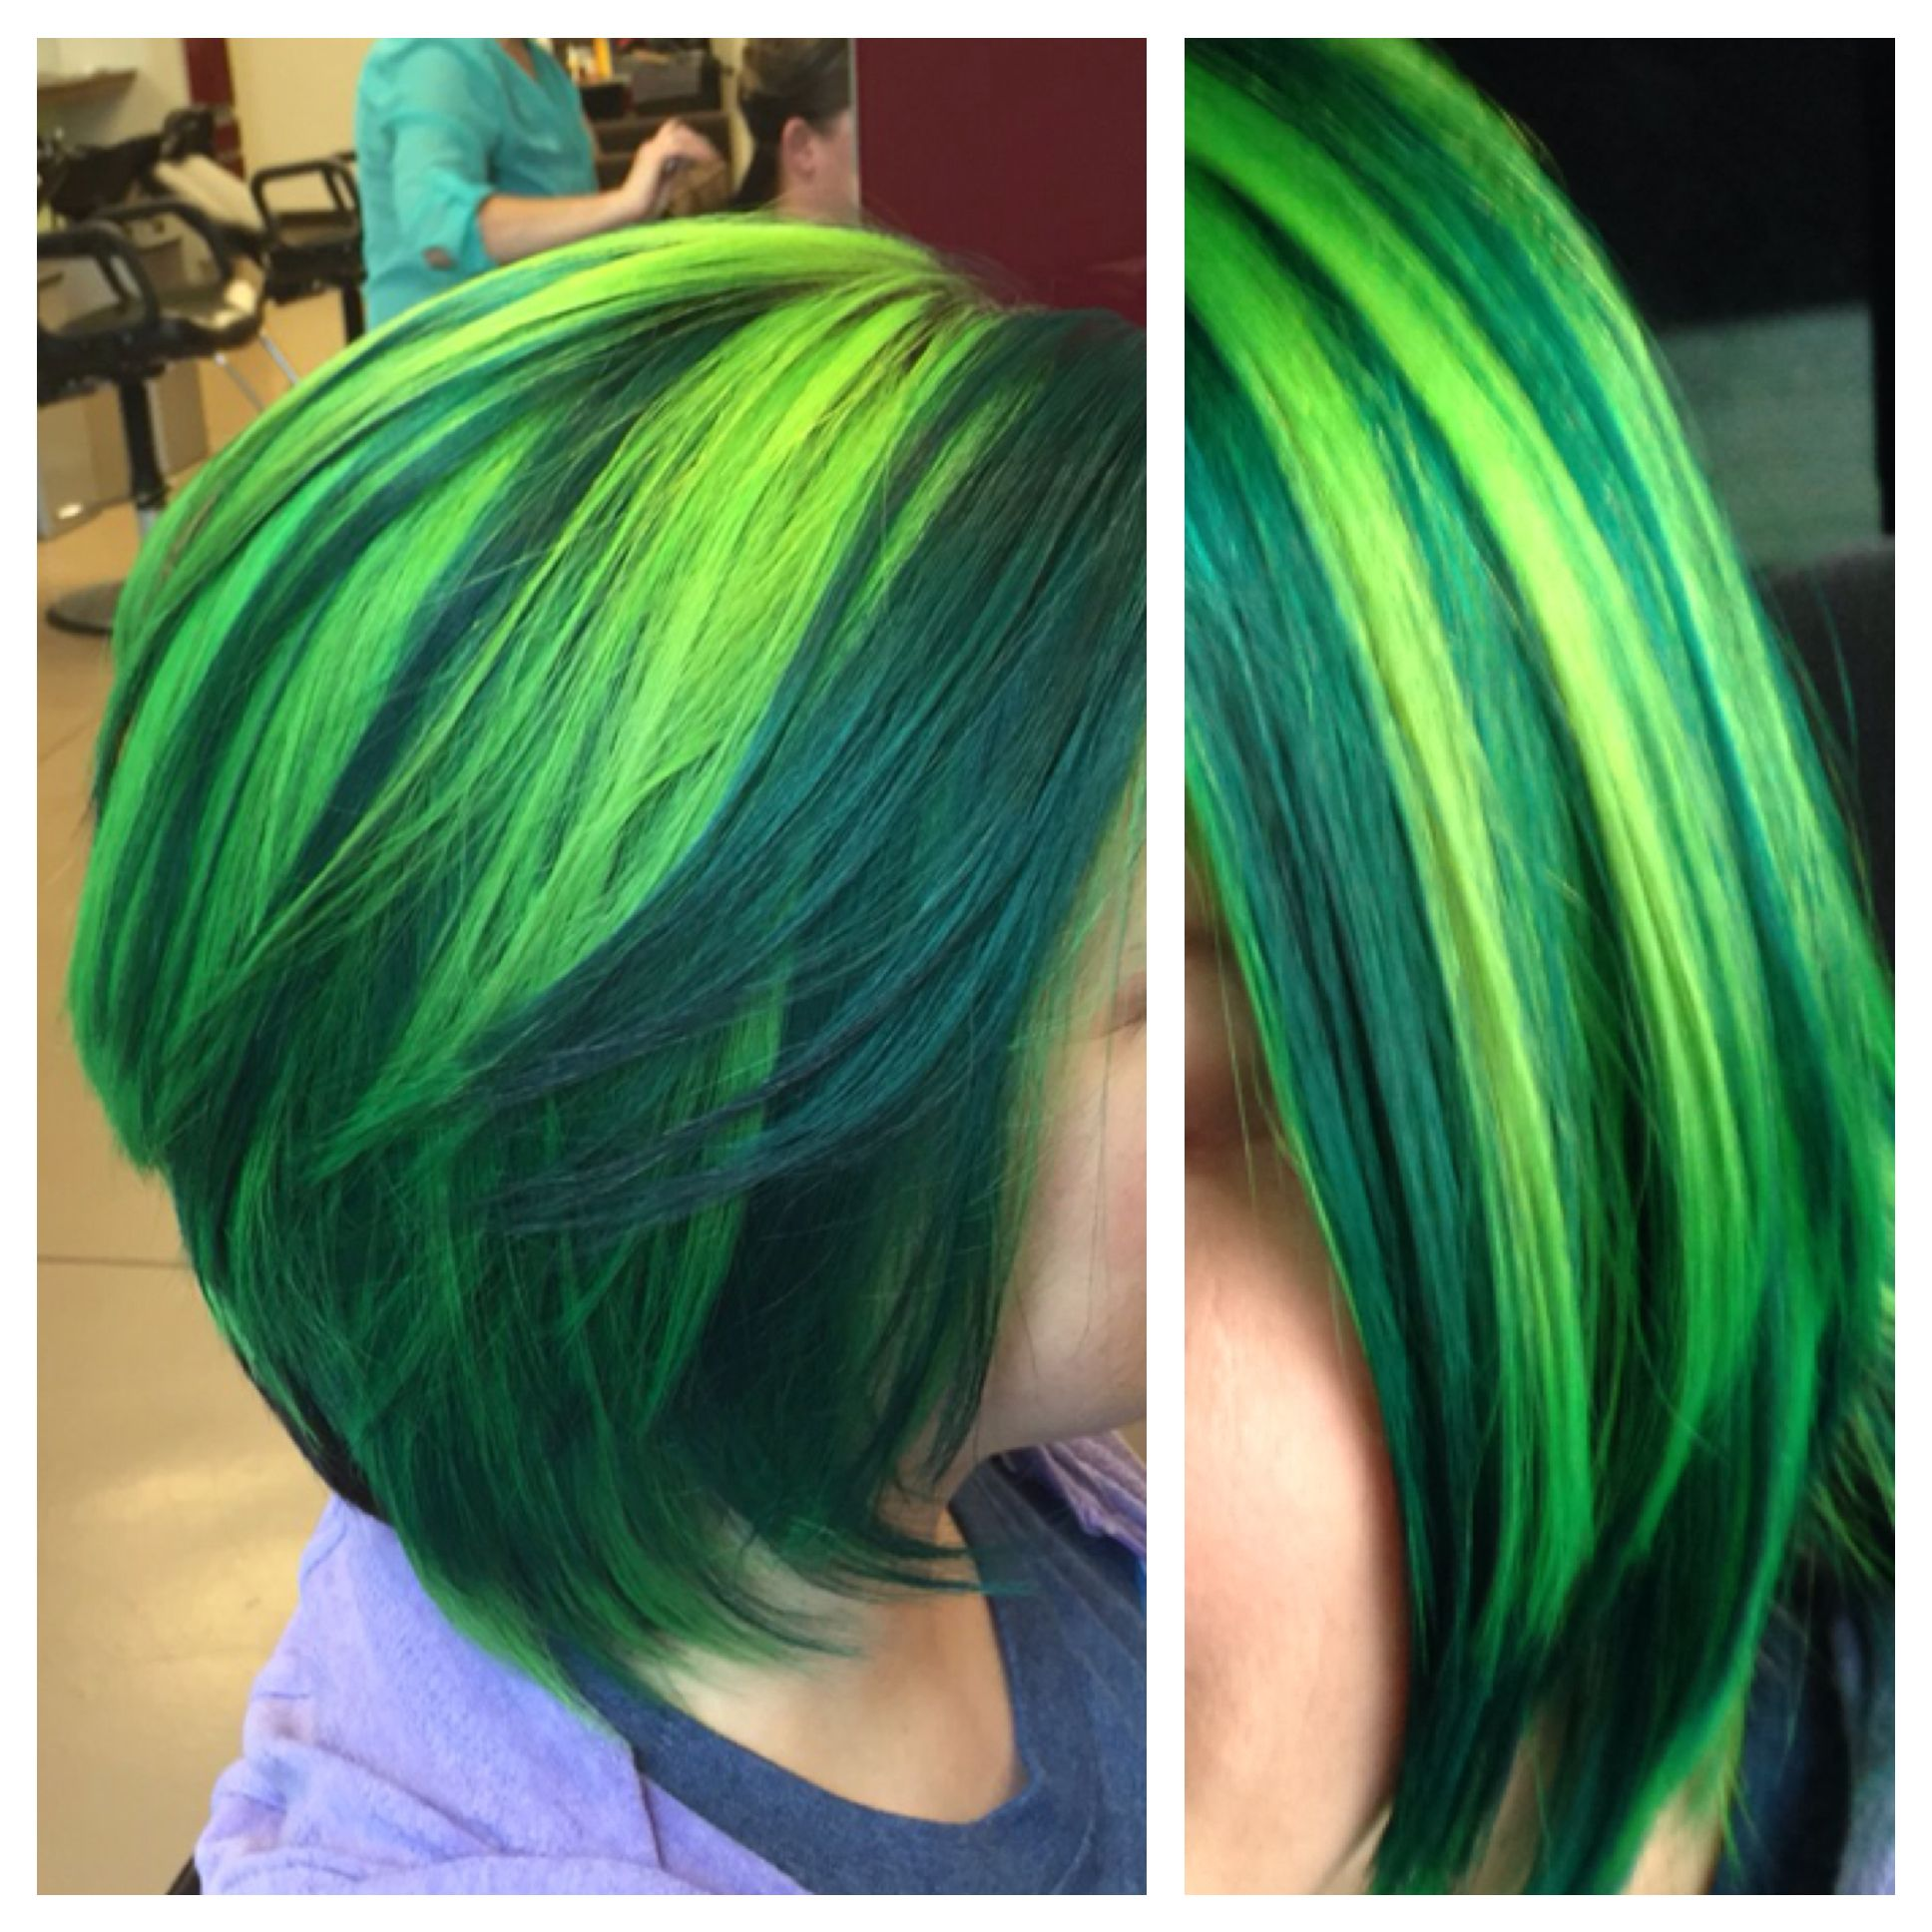 Pravana Neon Blue And Yellow Mixed Together To Make The Lime Green For Dark I Love It